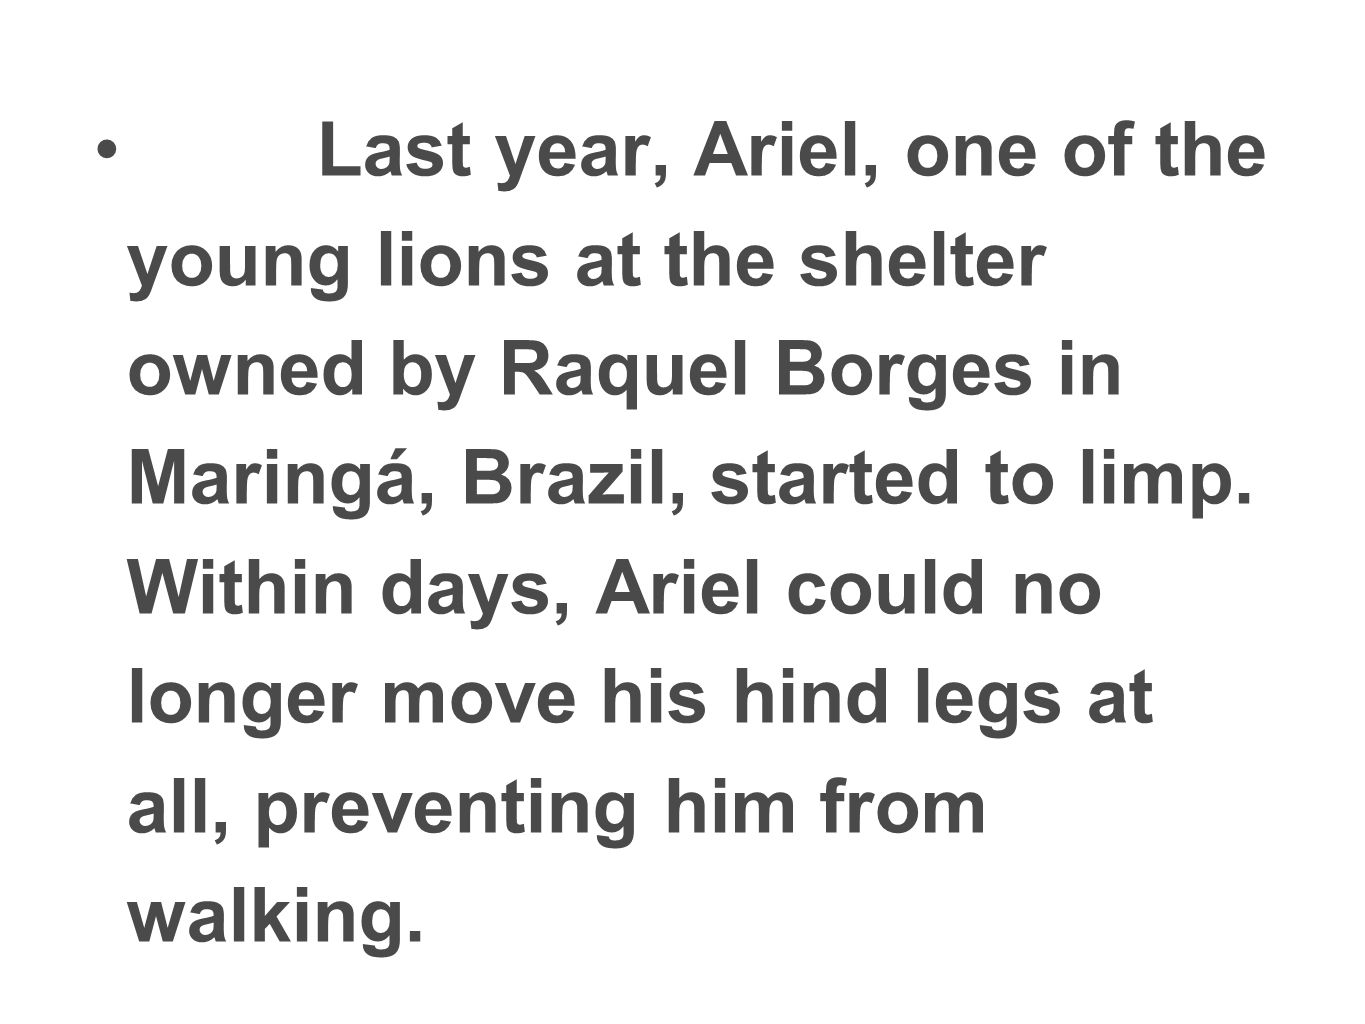 Last year, Ariel, one of the young lions at the shelter owned by Raquel Borges in Maringá, Brazil, started to limp.